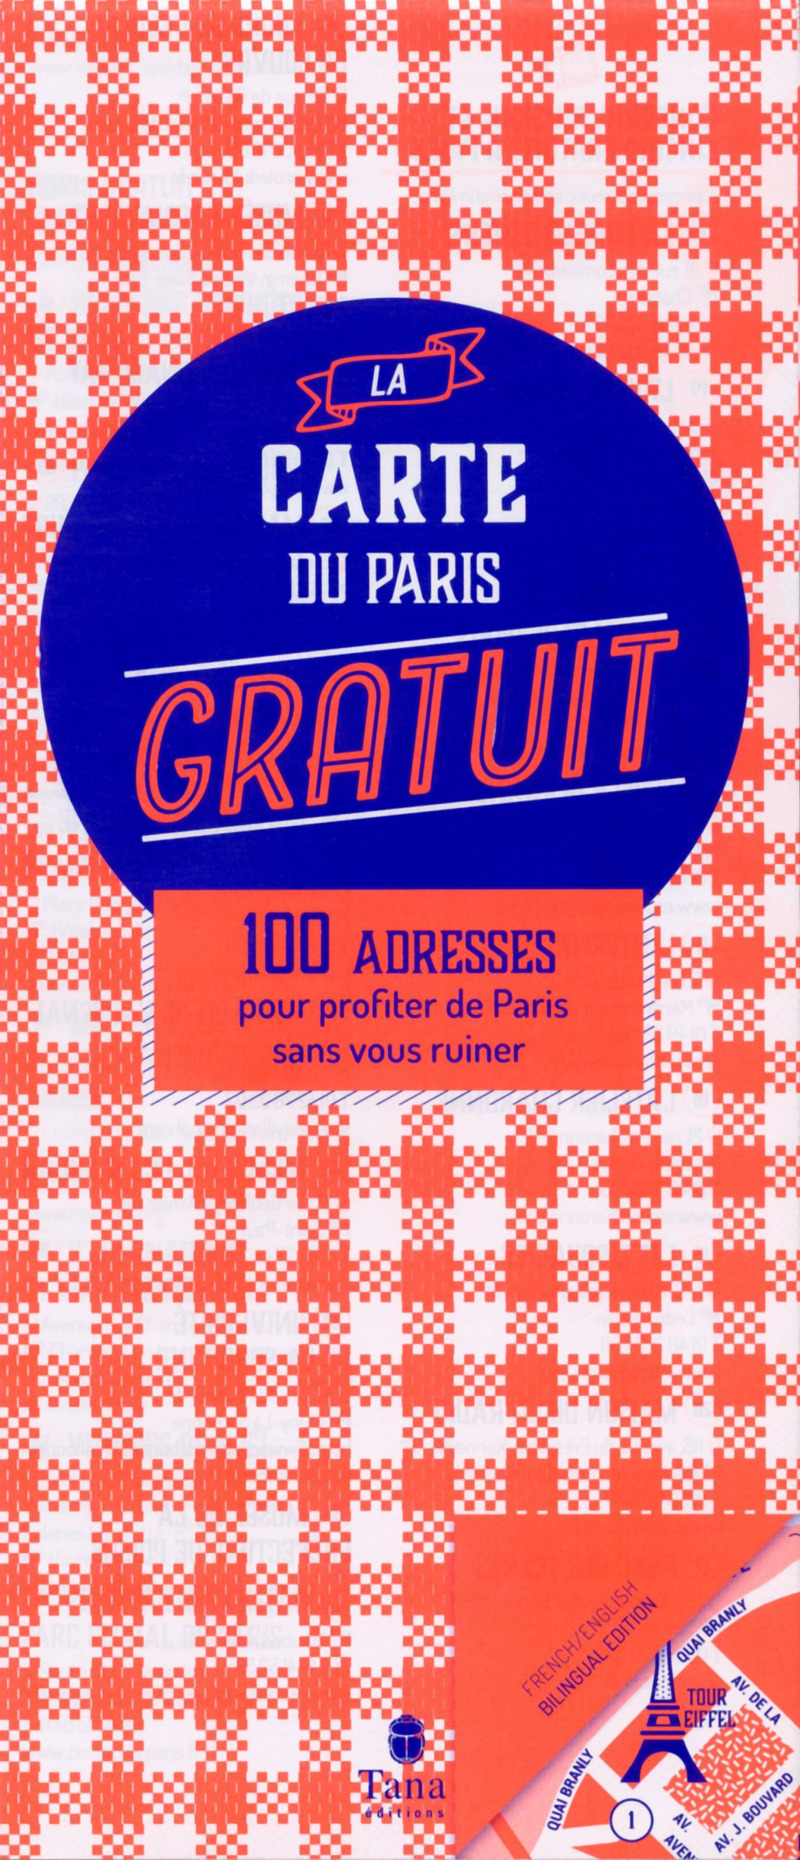 La carte du Paris gratuit